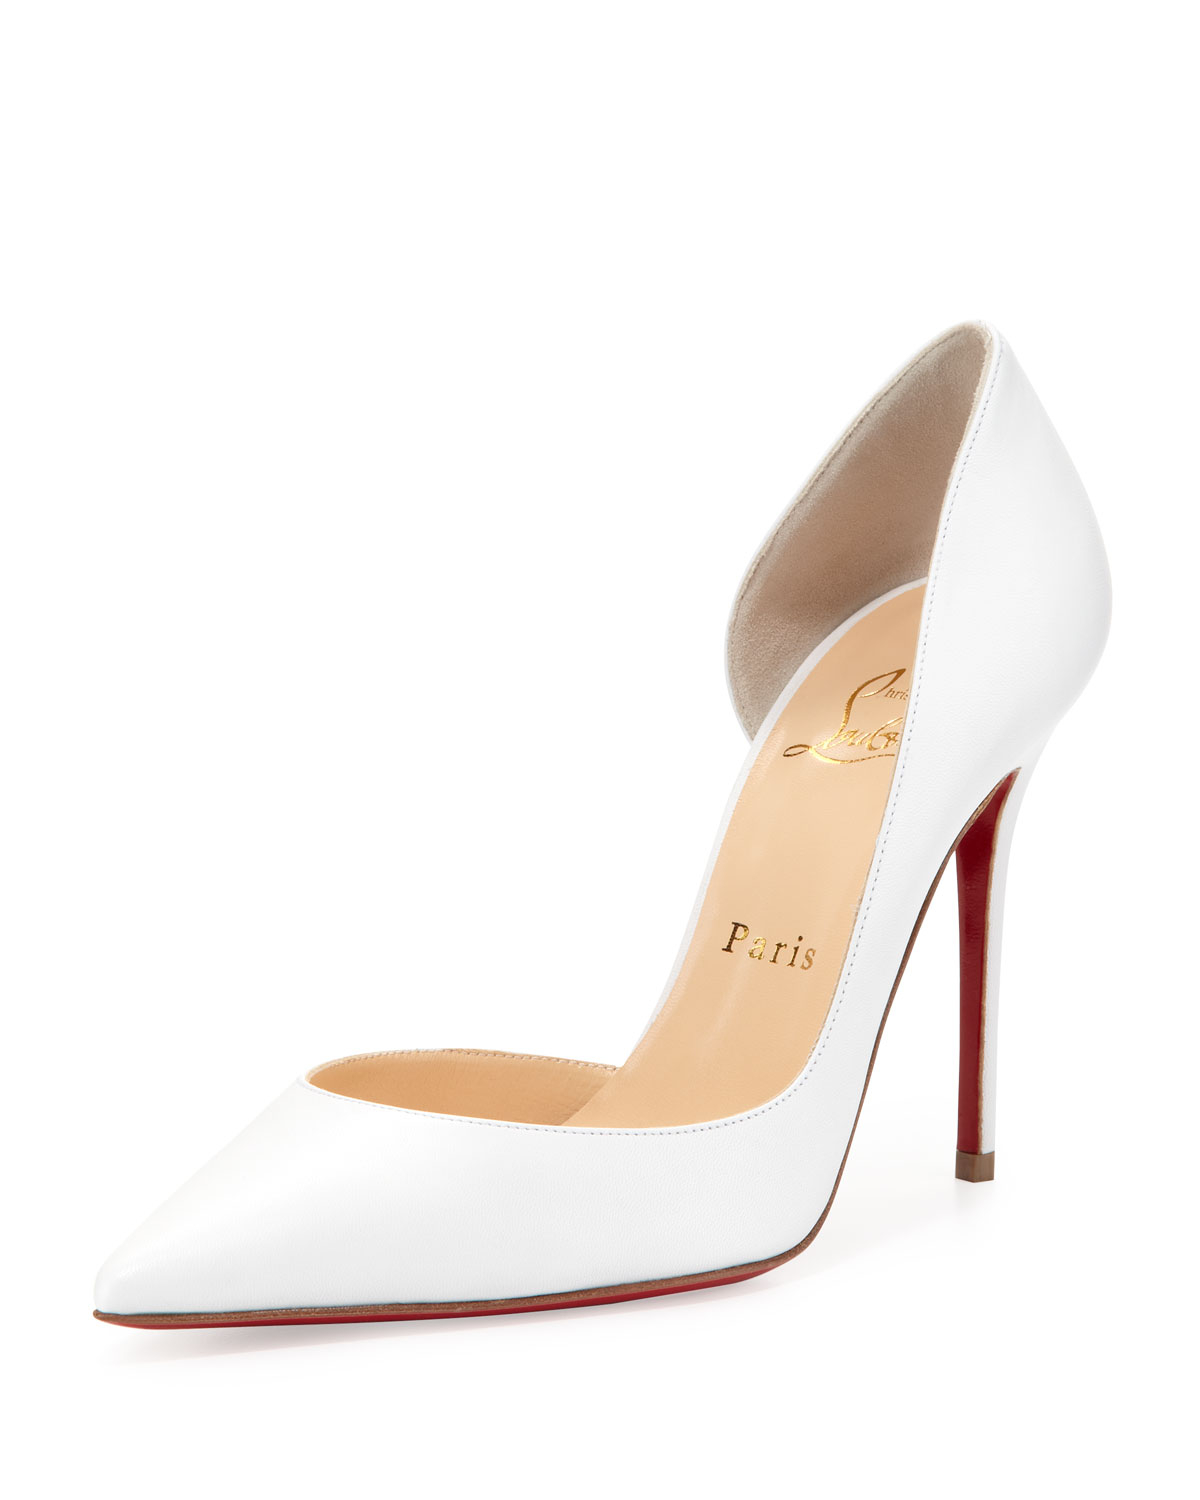 487f459a7c Christian Louboutin Iriza Red Sole Half-d'orsay Pump in Red - Lyst